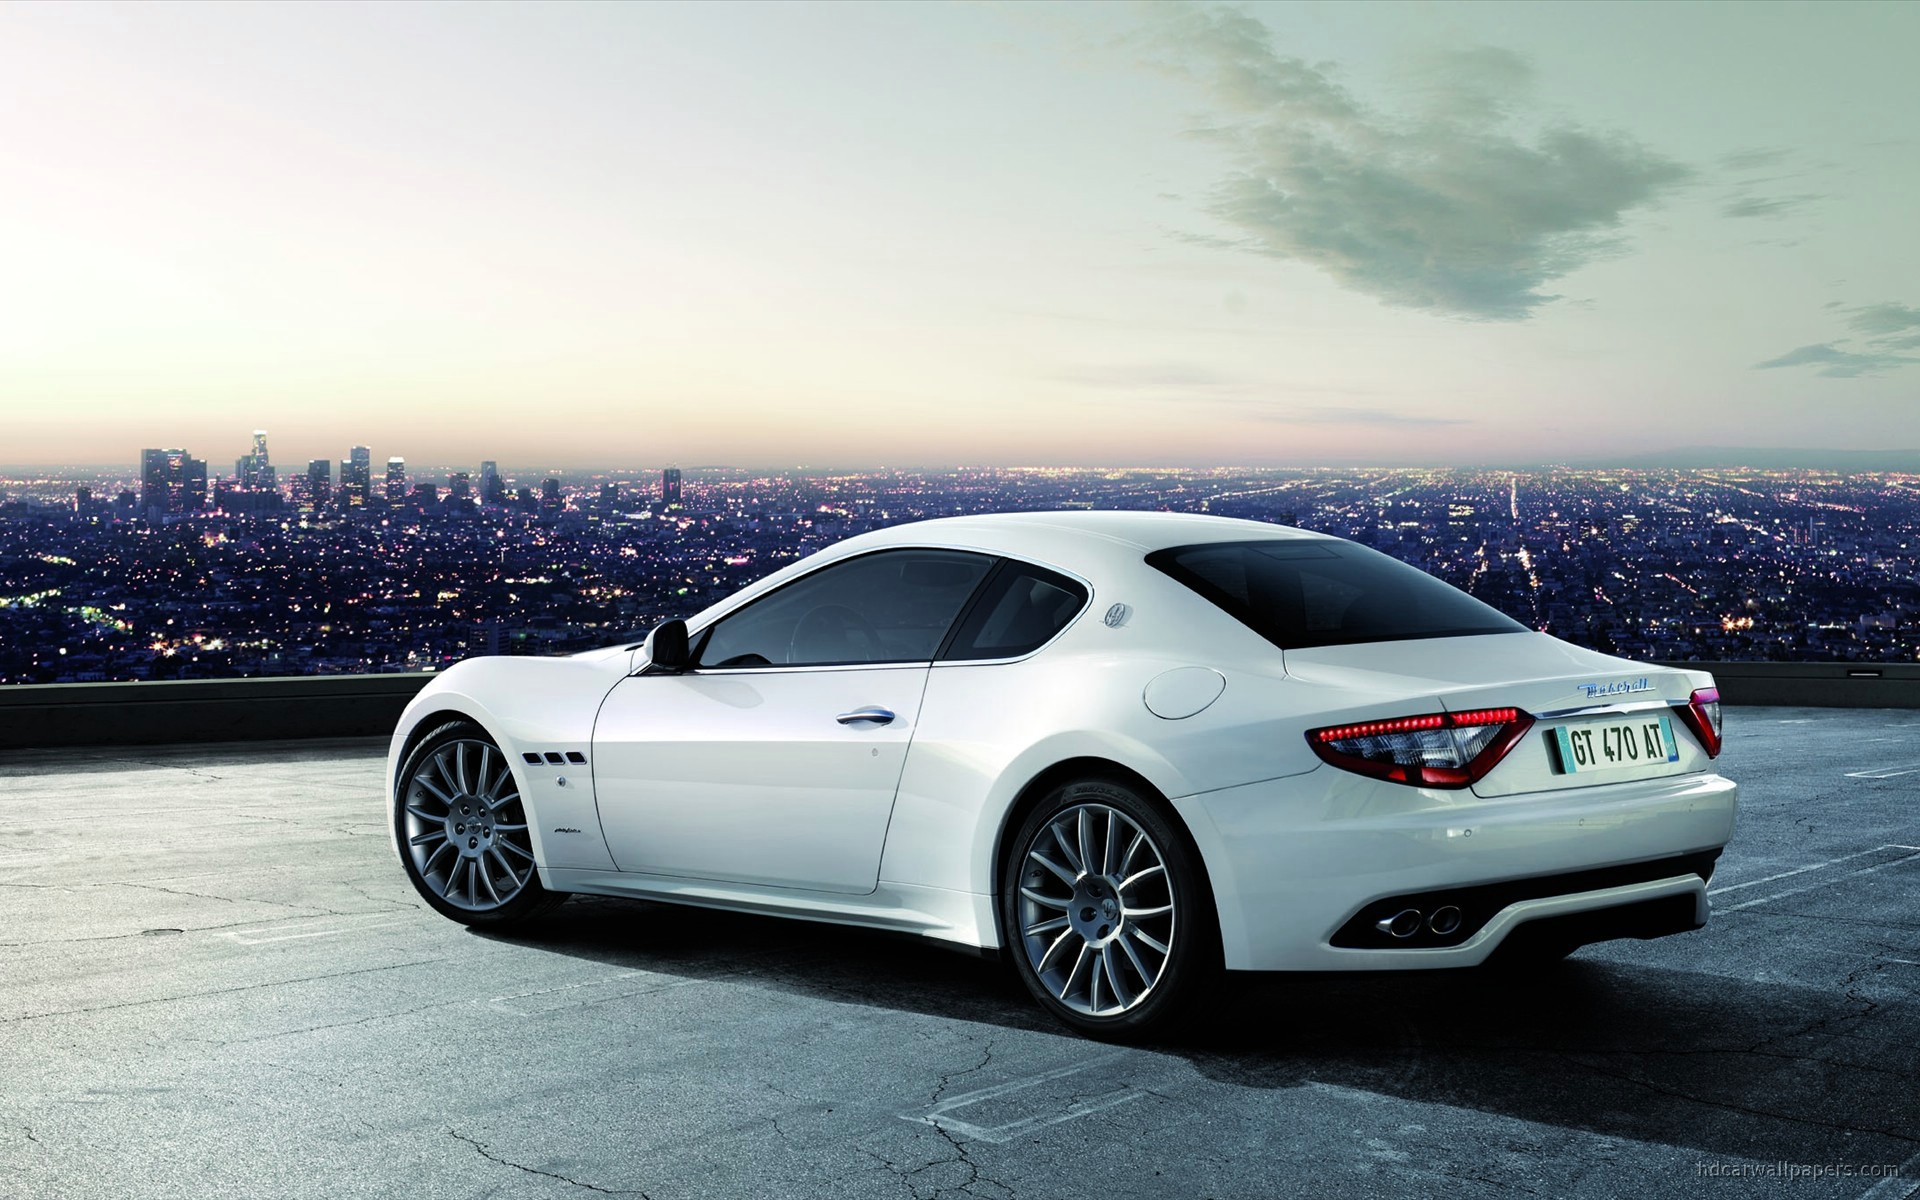 2010 maserati granturismo s automatic wallpaper hd car wallpapers id 1613. Black Bedroom Furniture Sets. Home Design Ideas